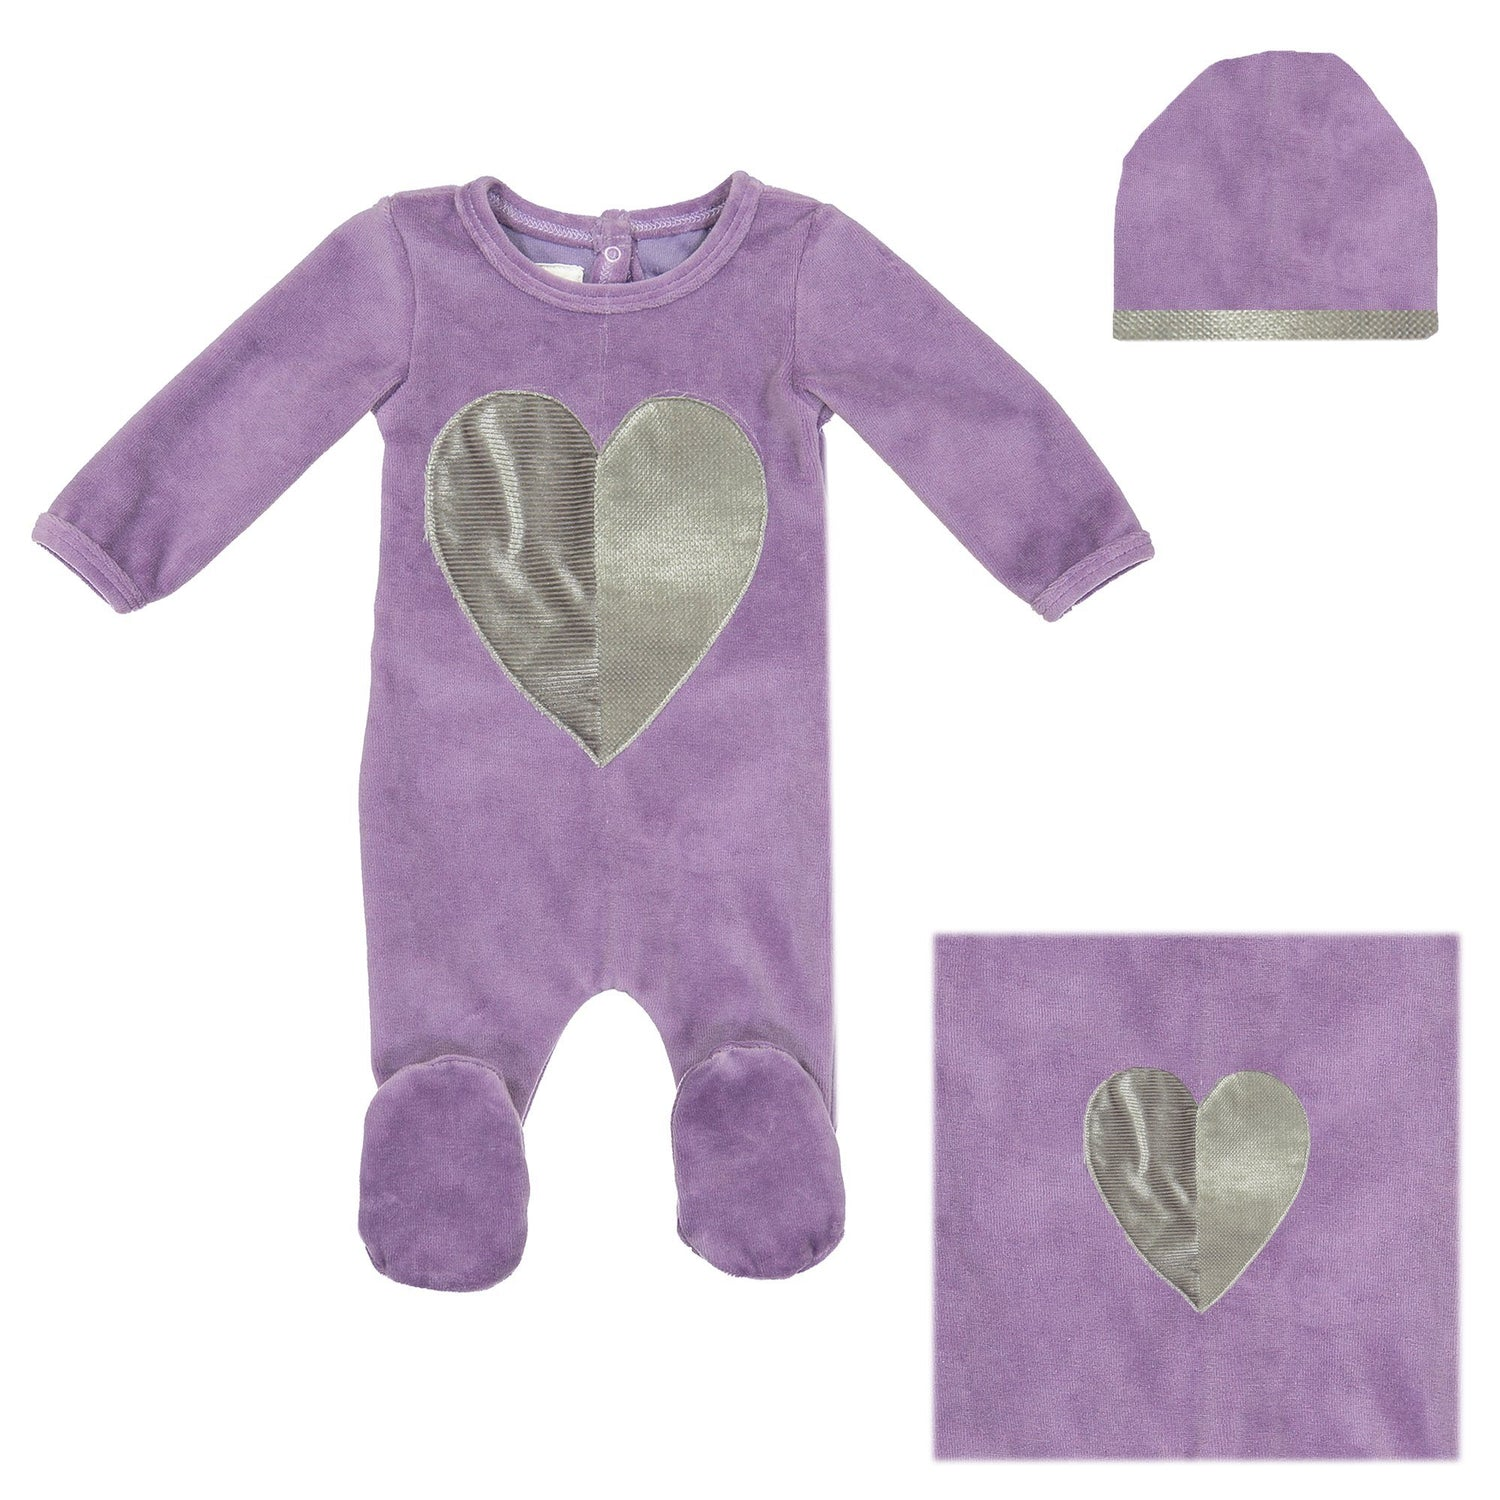 Whimiscal Velour Set Baby Sets Maniere Accessories Purple 3 Months